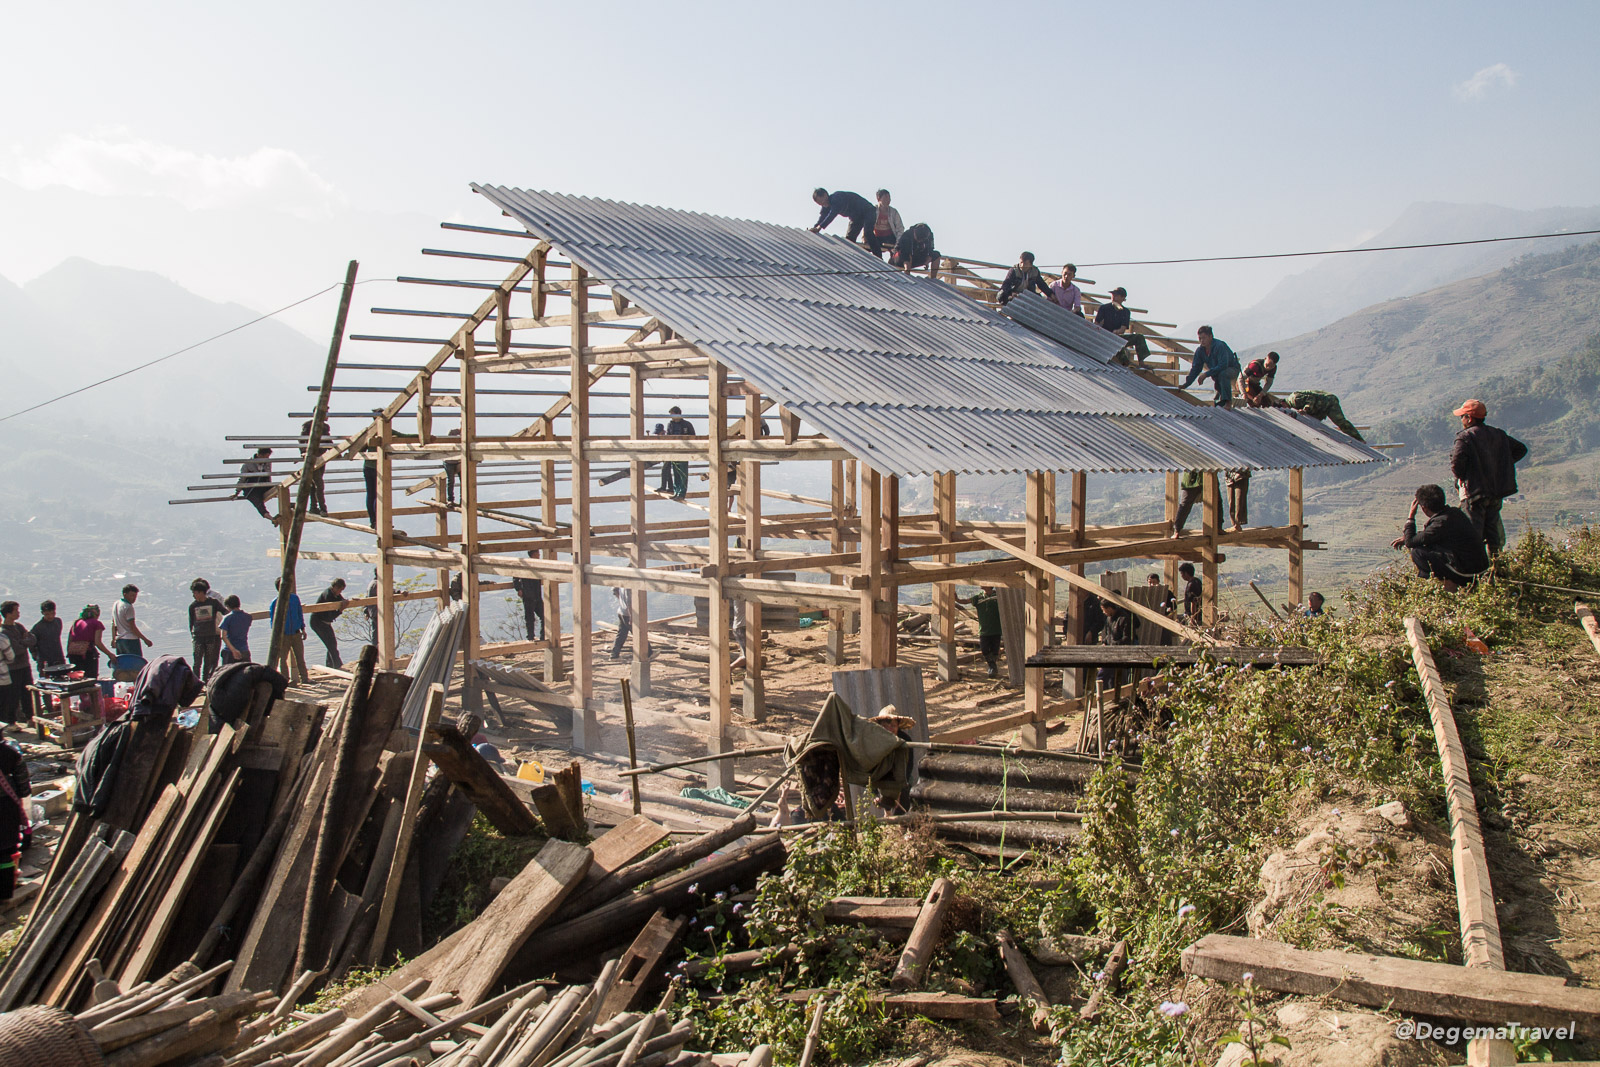 House under construction in the Mường Hoa Valley near Sapa, Vietnam